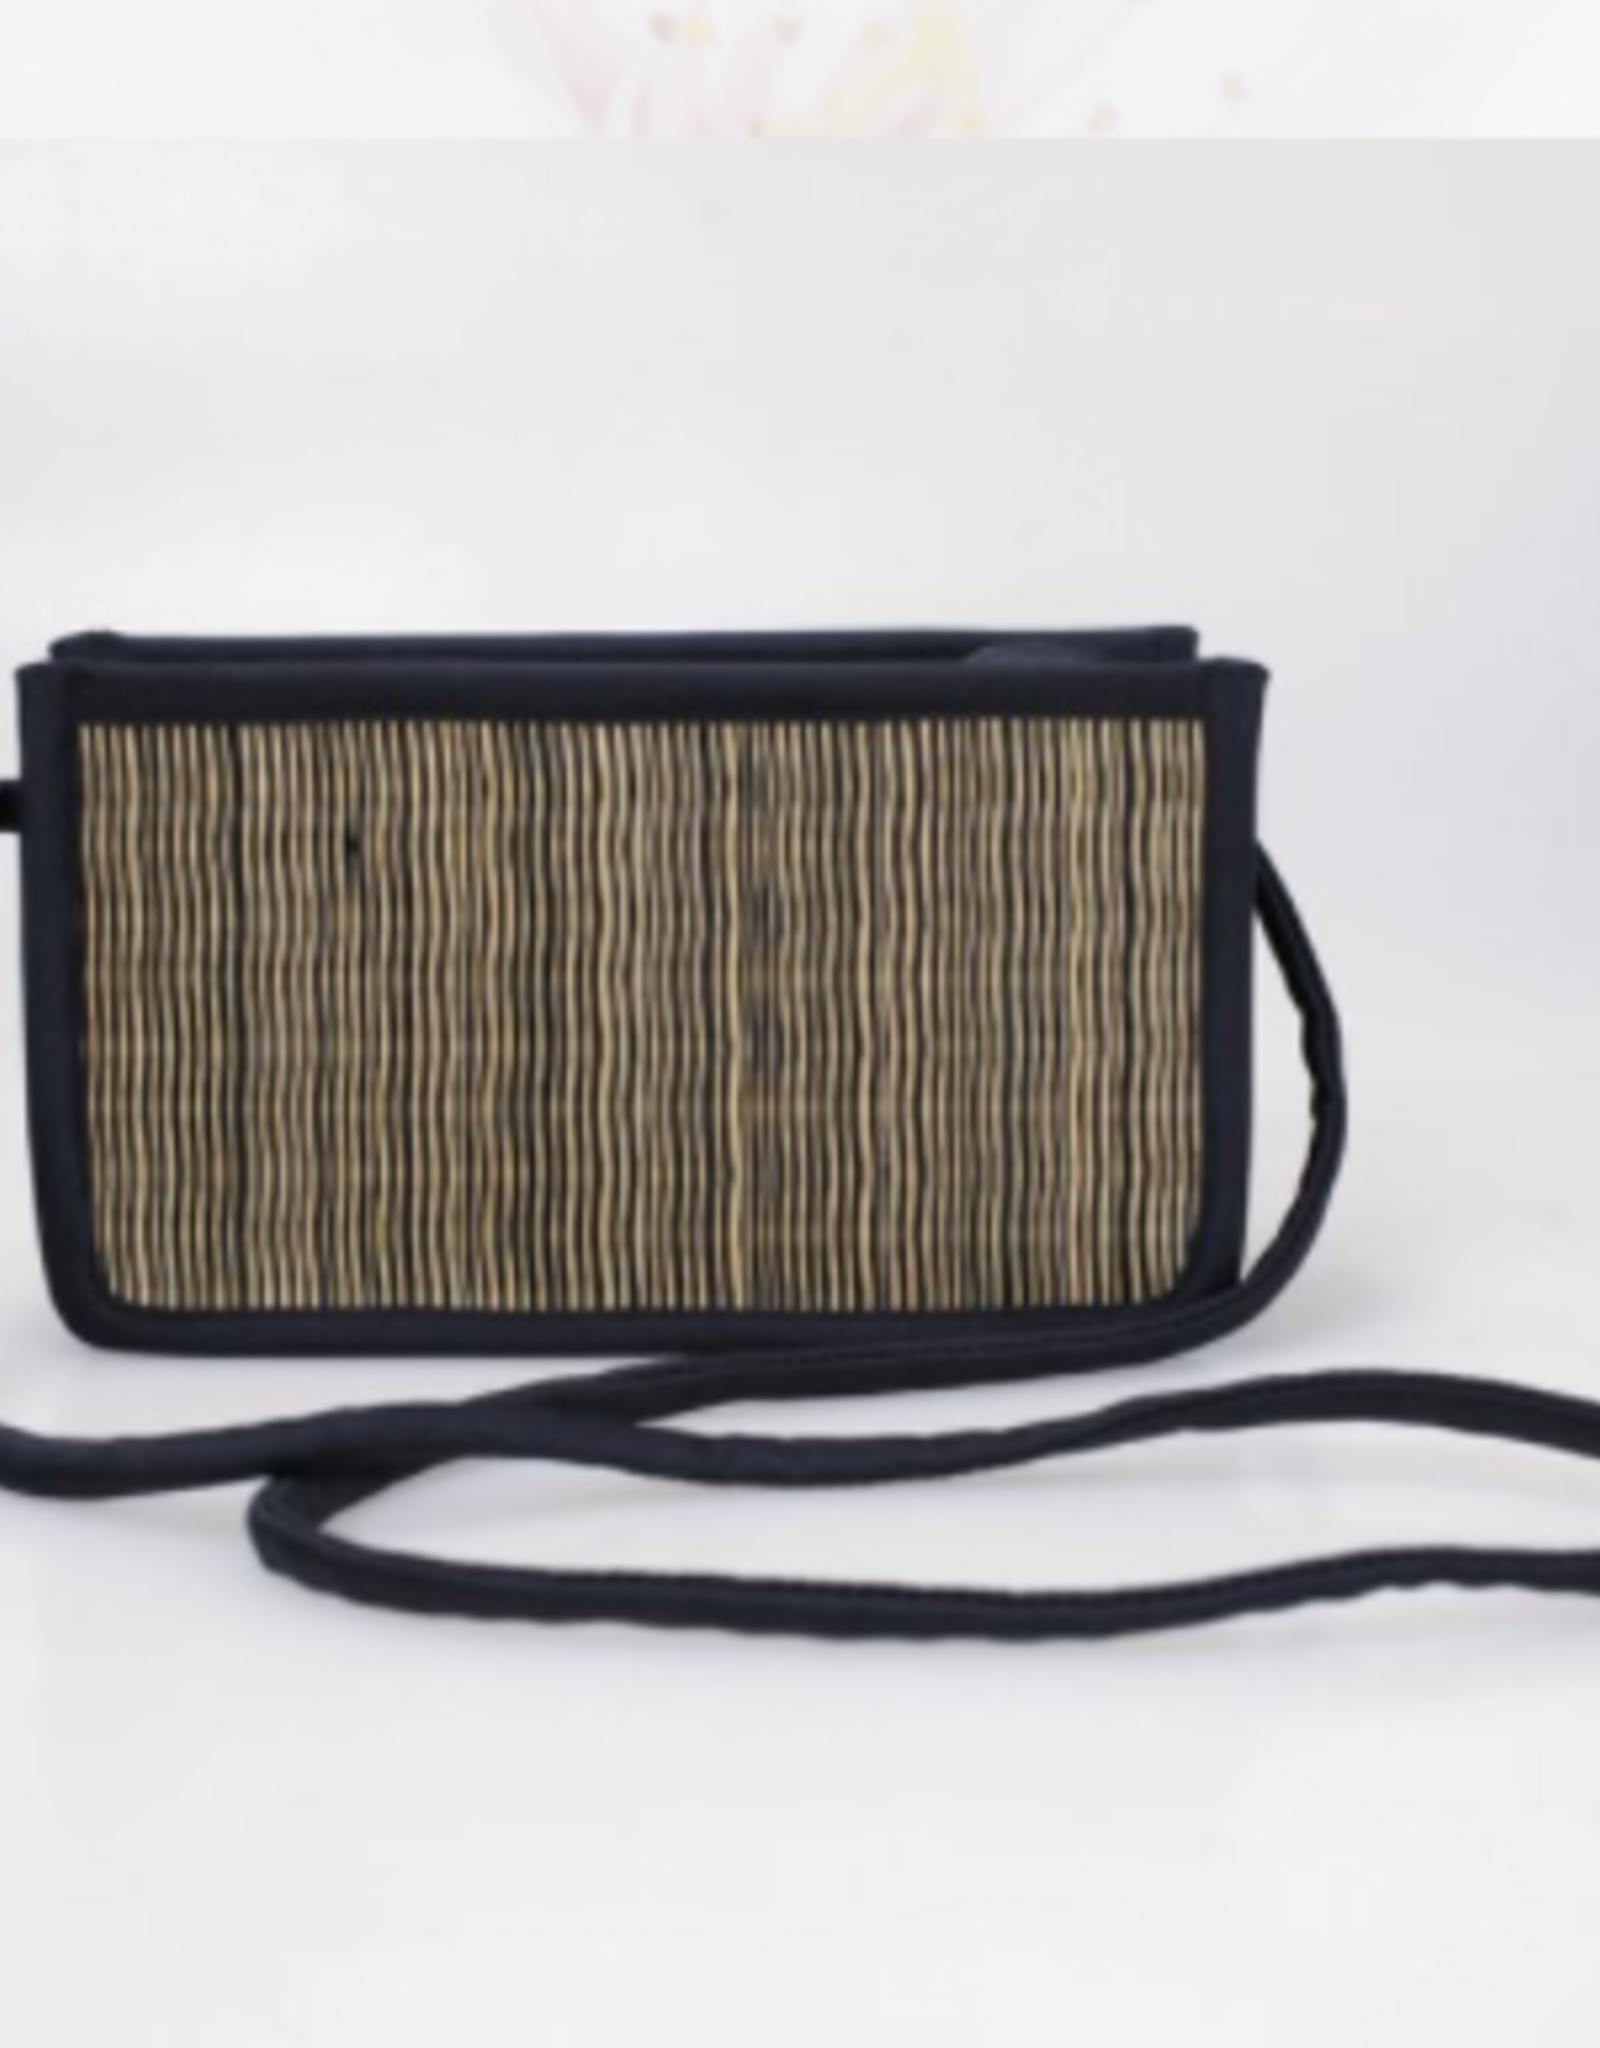 Cambodia, Club Basket Purse, Variety of Shapes